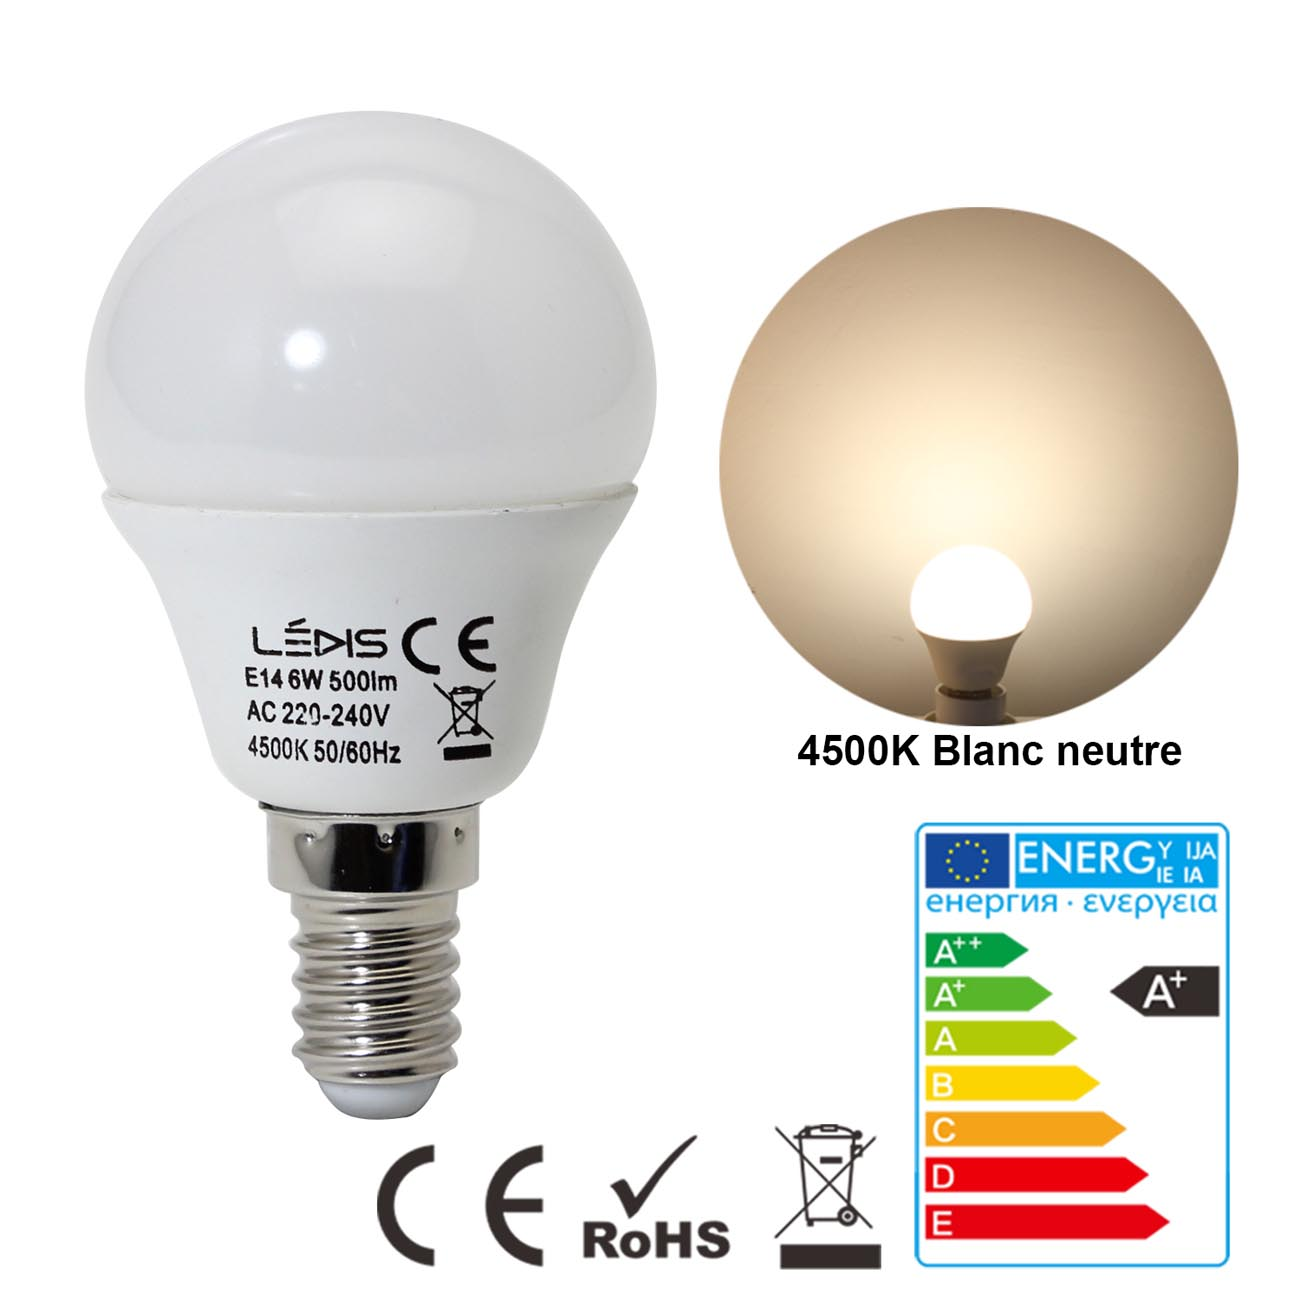 E14-E27-5W-6W-LED-Ampoule-Lampe-Bougie-Candle-SMD-Chandelier-Golf-Globe-Lumiere